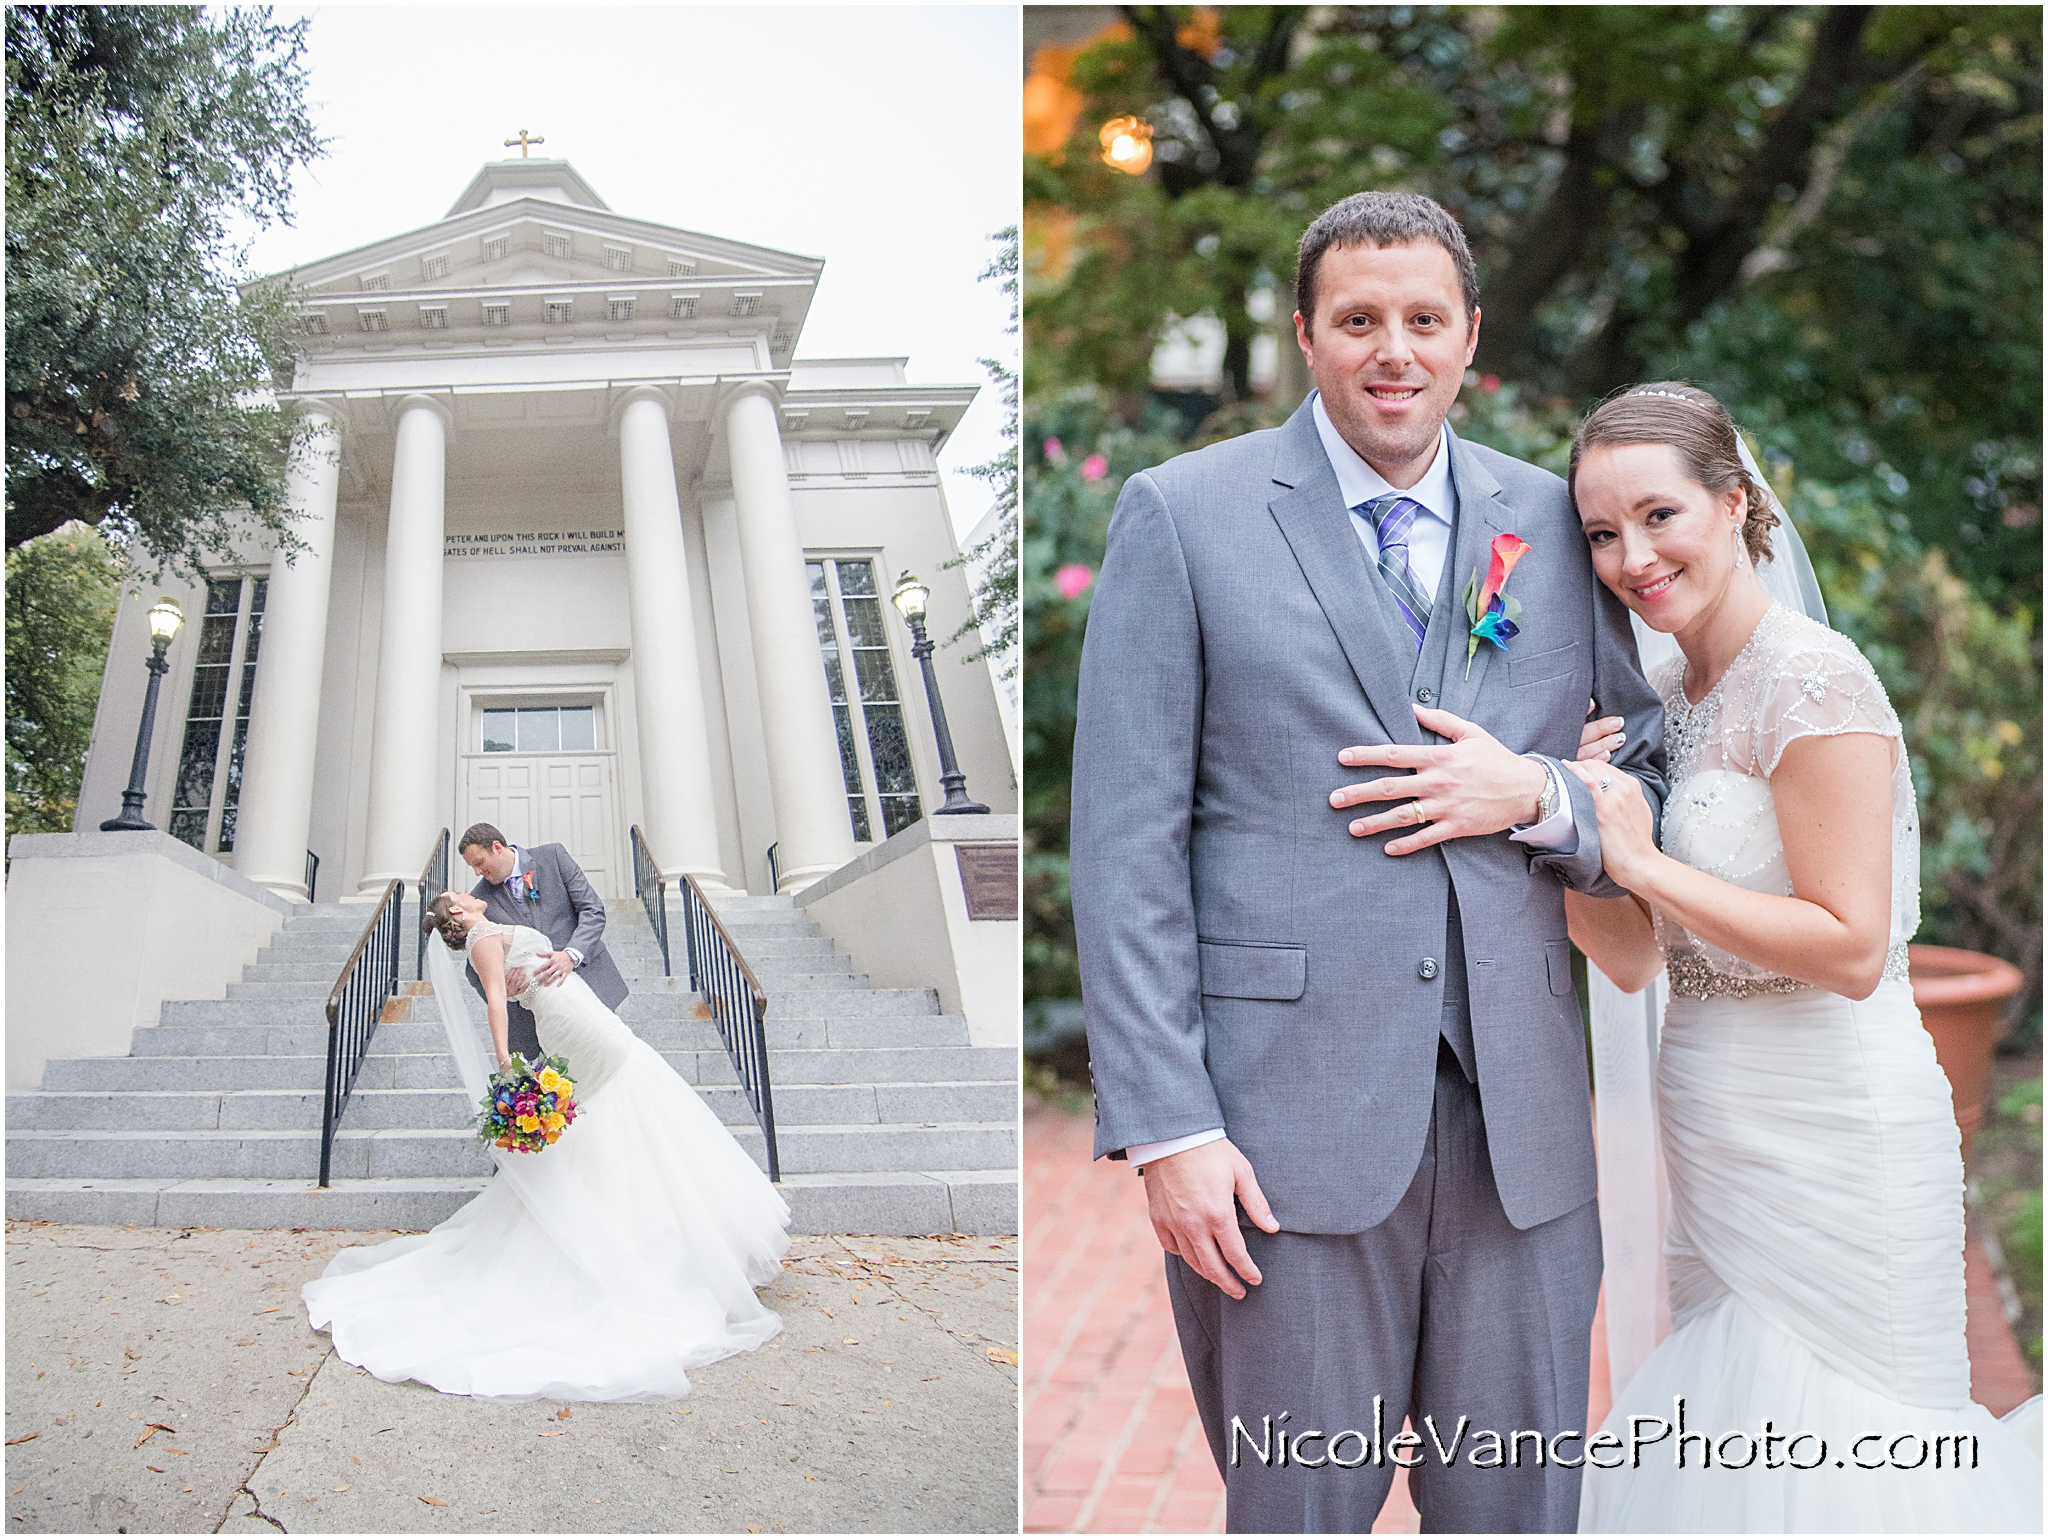 Portraits in from of St. Peter's Church in Richmond Virginia.